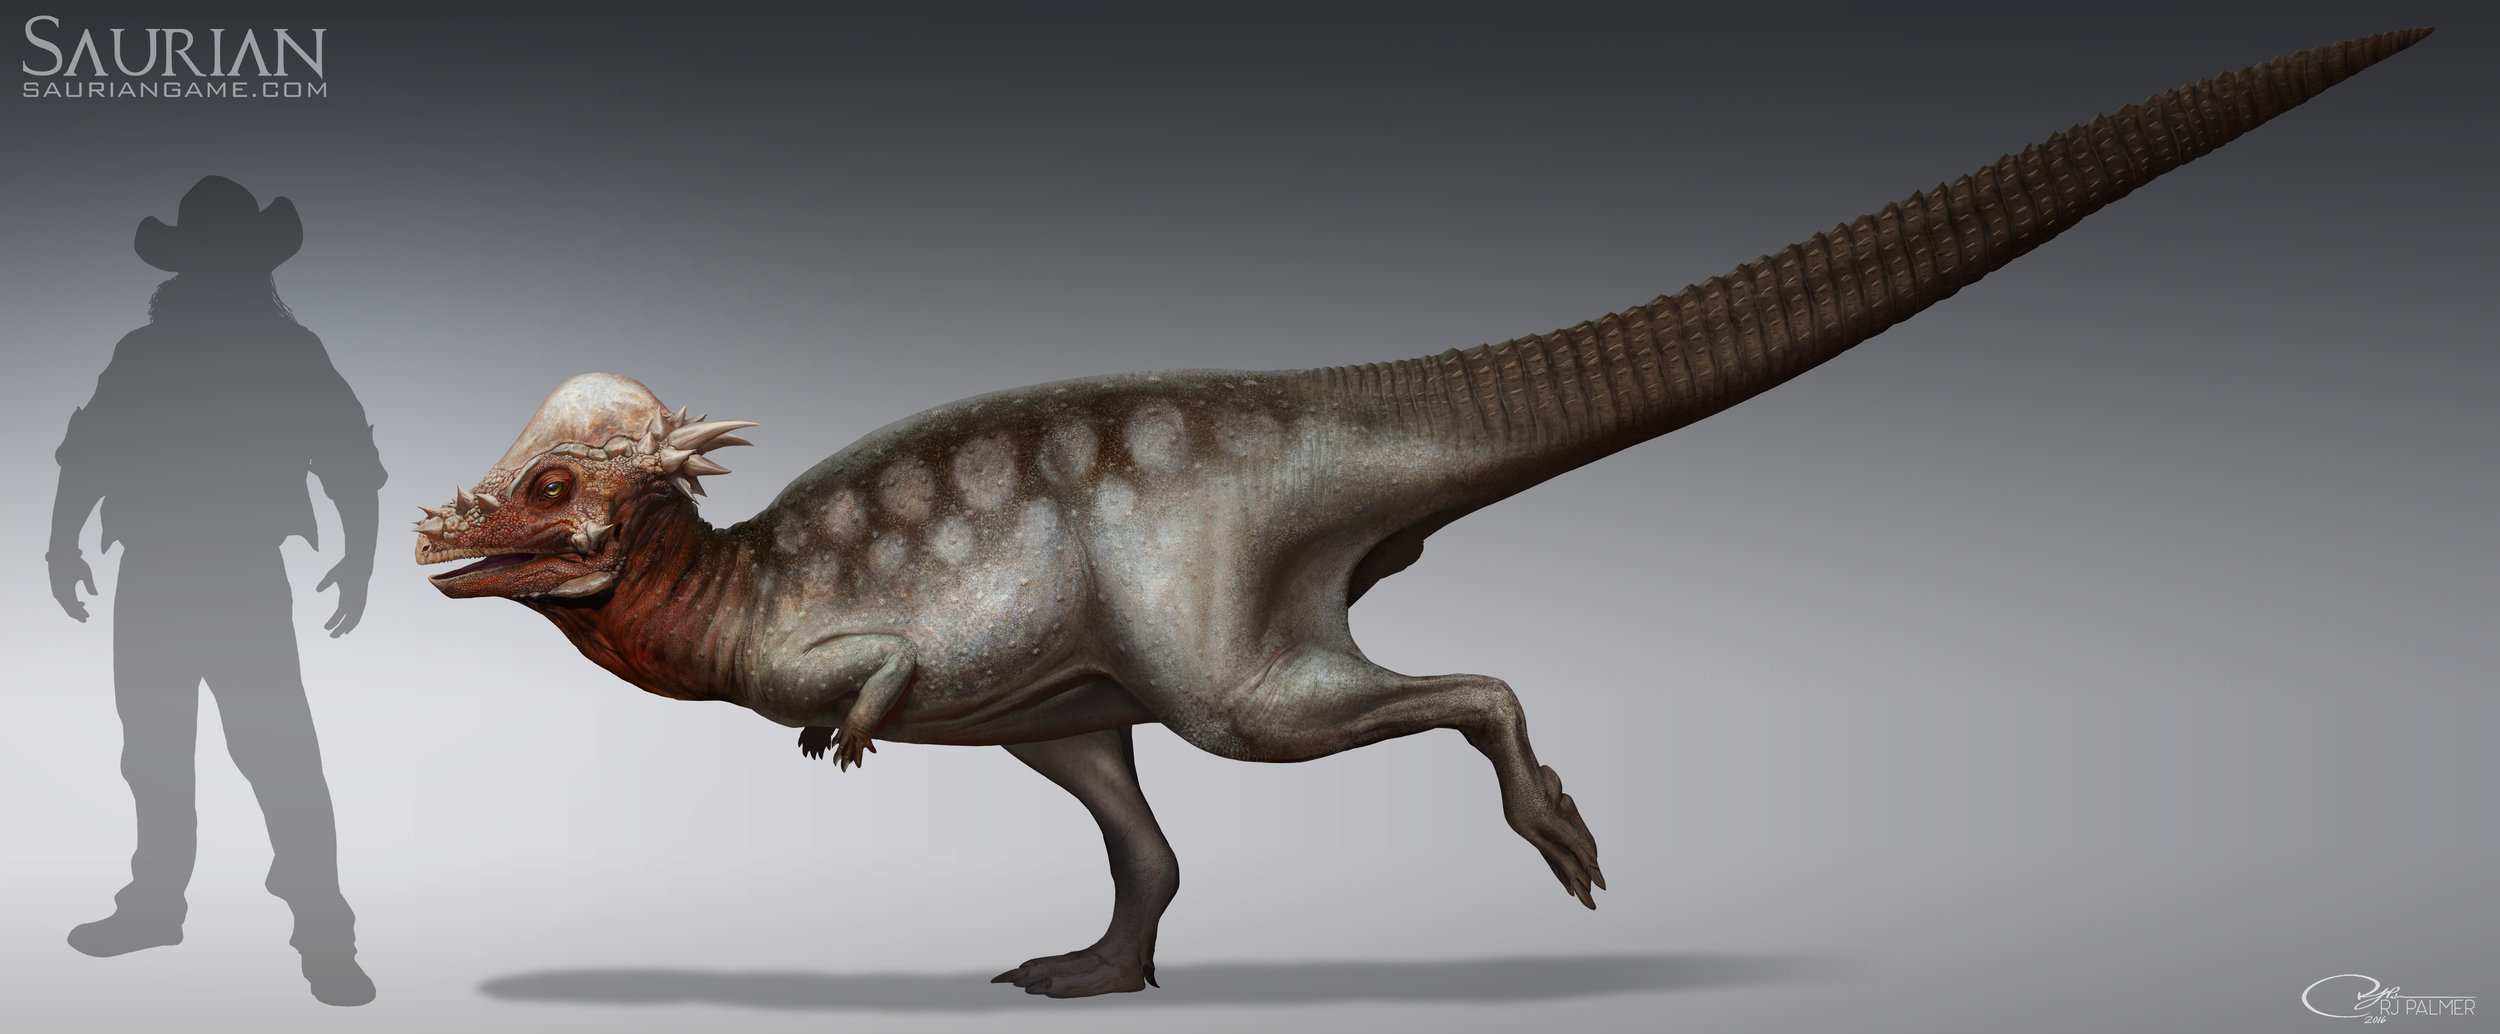 Pachycephalosaurus adult final concept art by RJ Palmer.